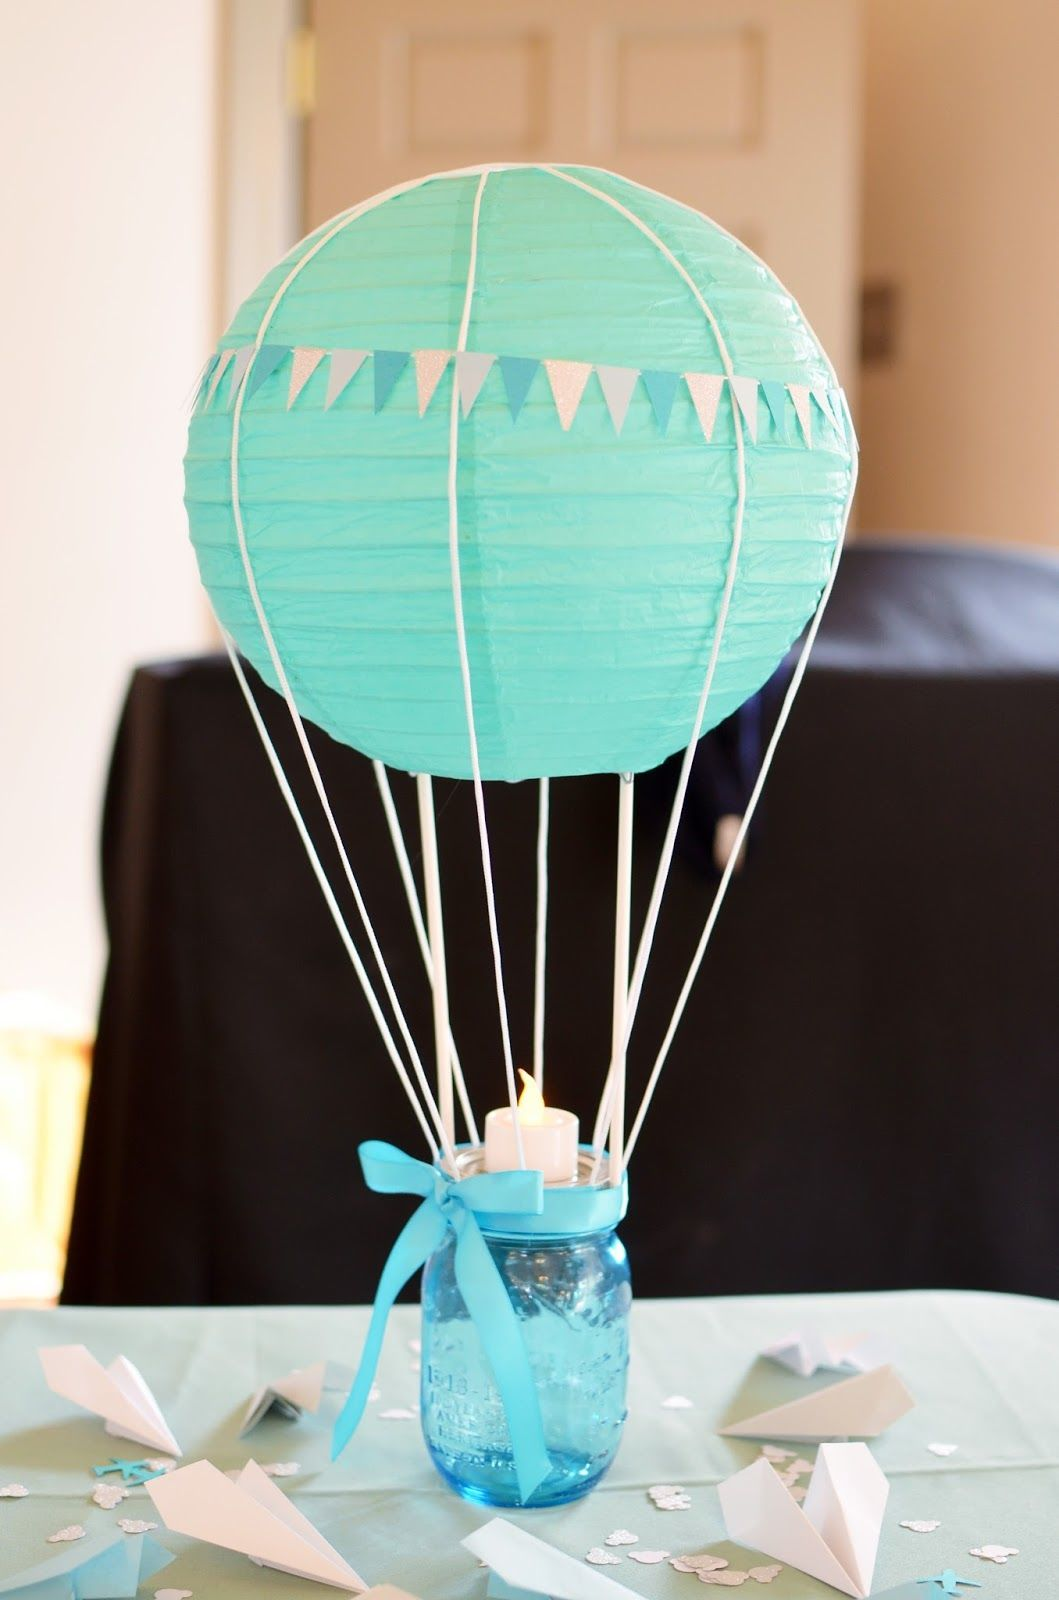 Hot Air Balloon Decoration For Baby Shower Pictures, Photos, and ...